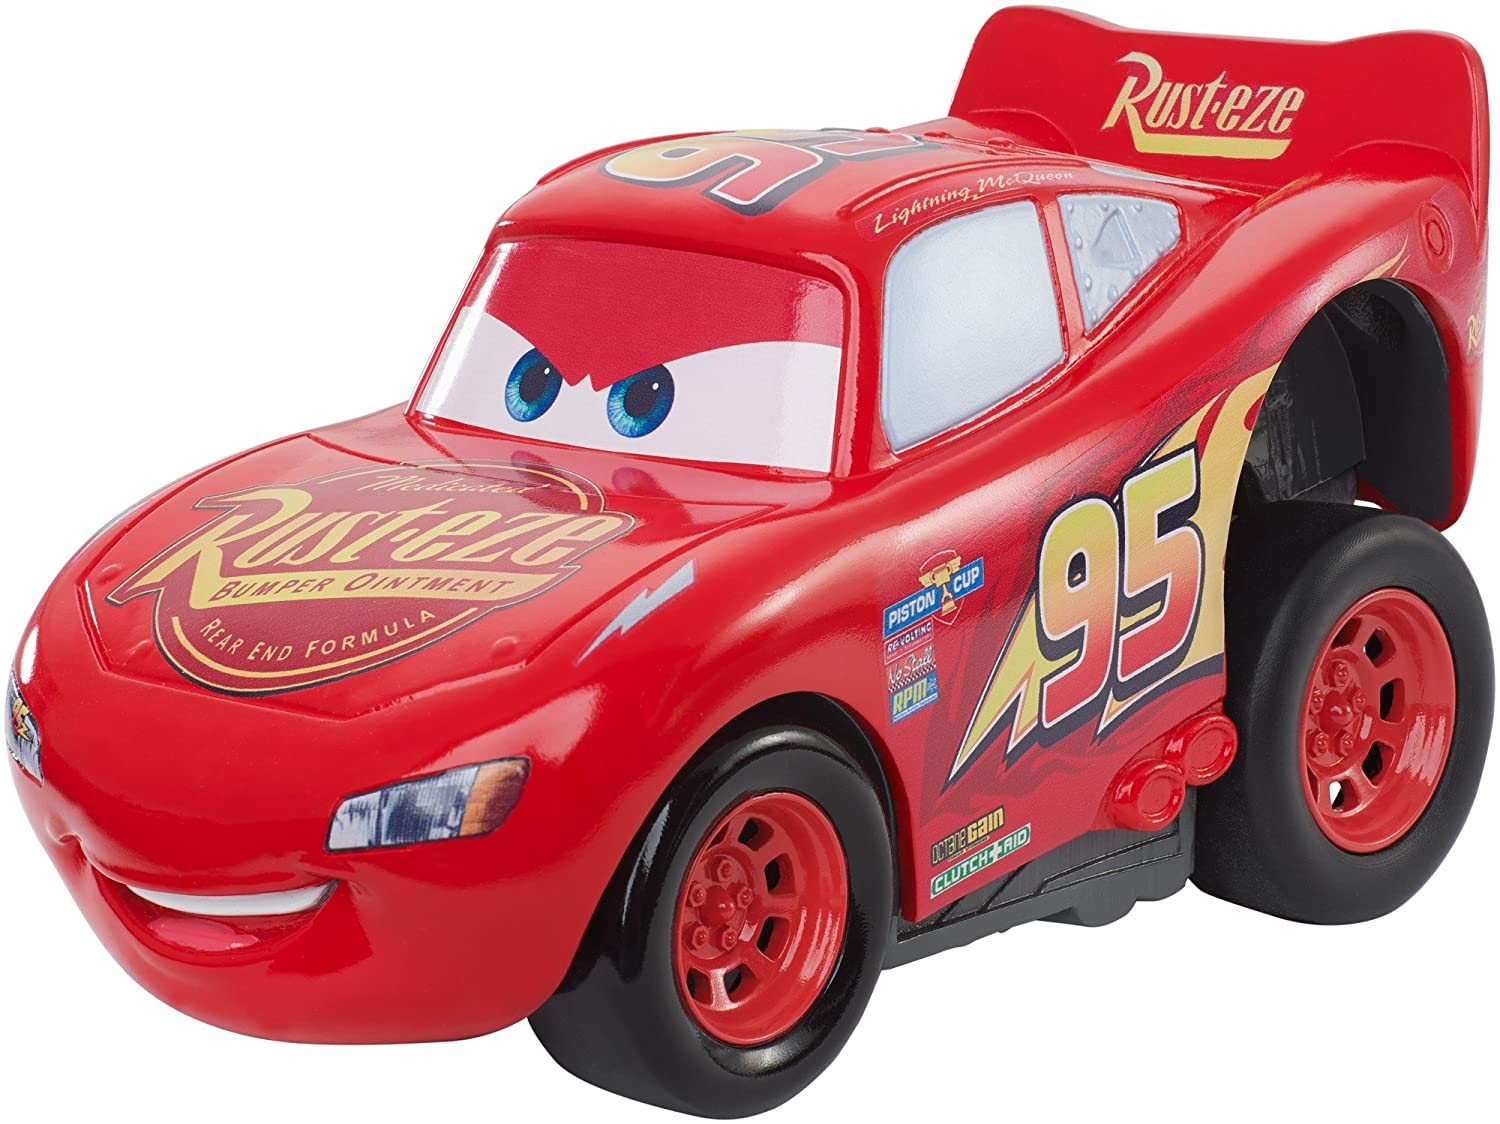 Disney cars dvd32 cars 3 revving action lightning mcqueen vehicle toy amazon co uk toys games